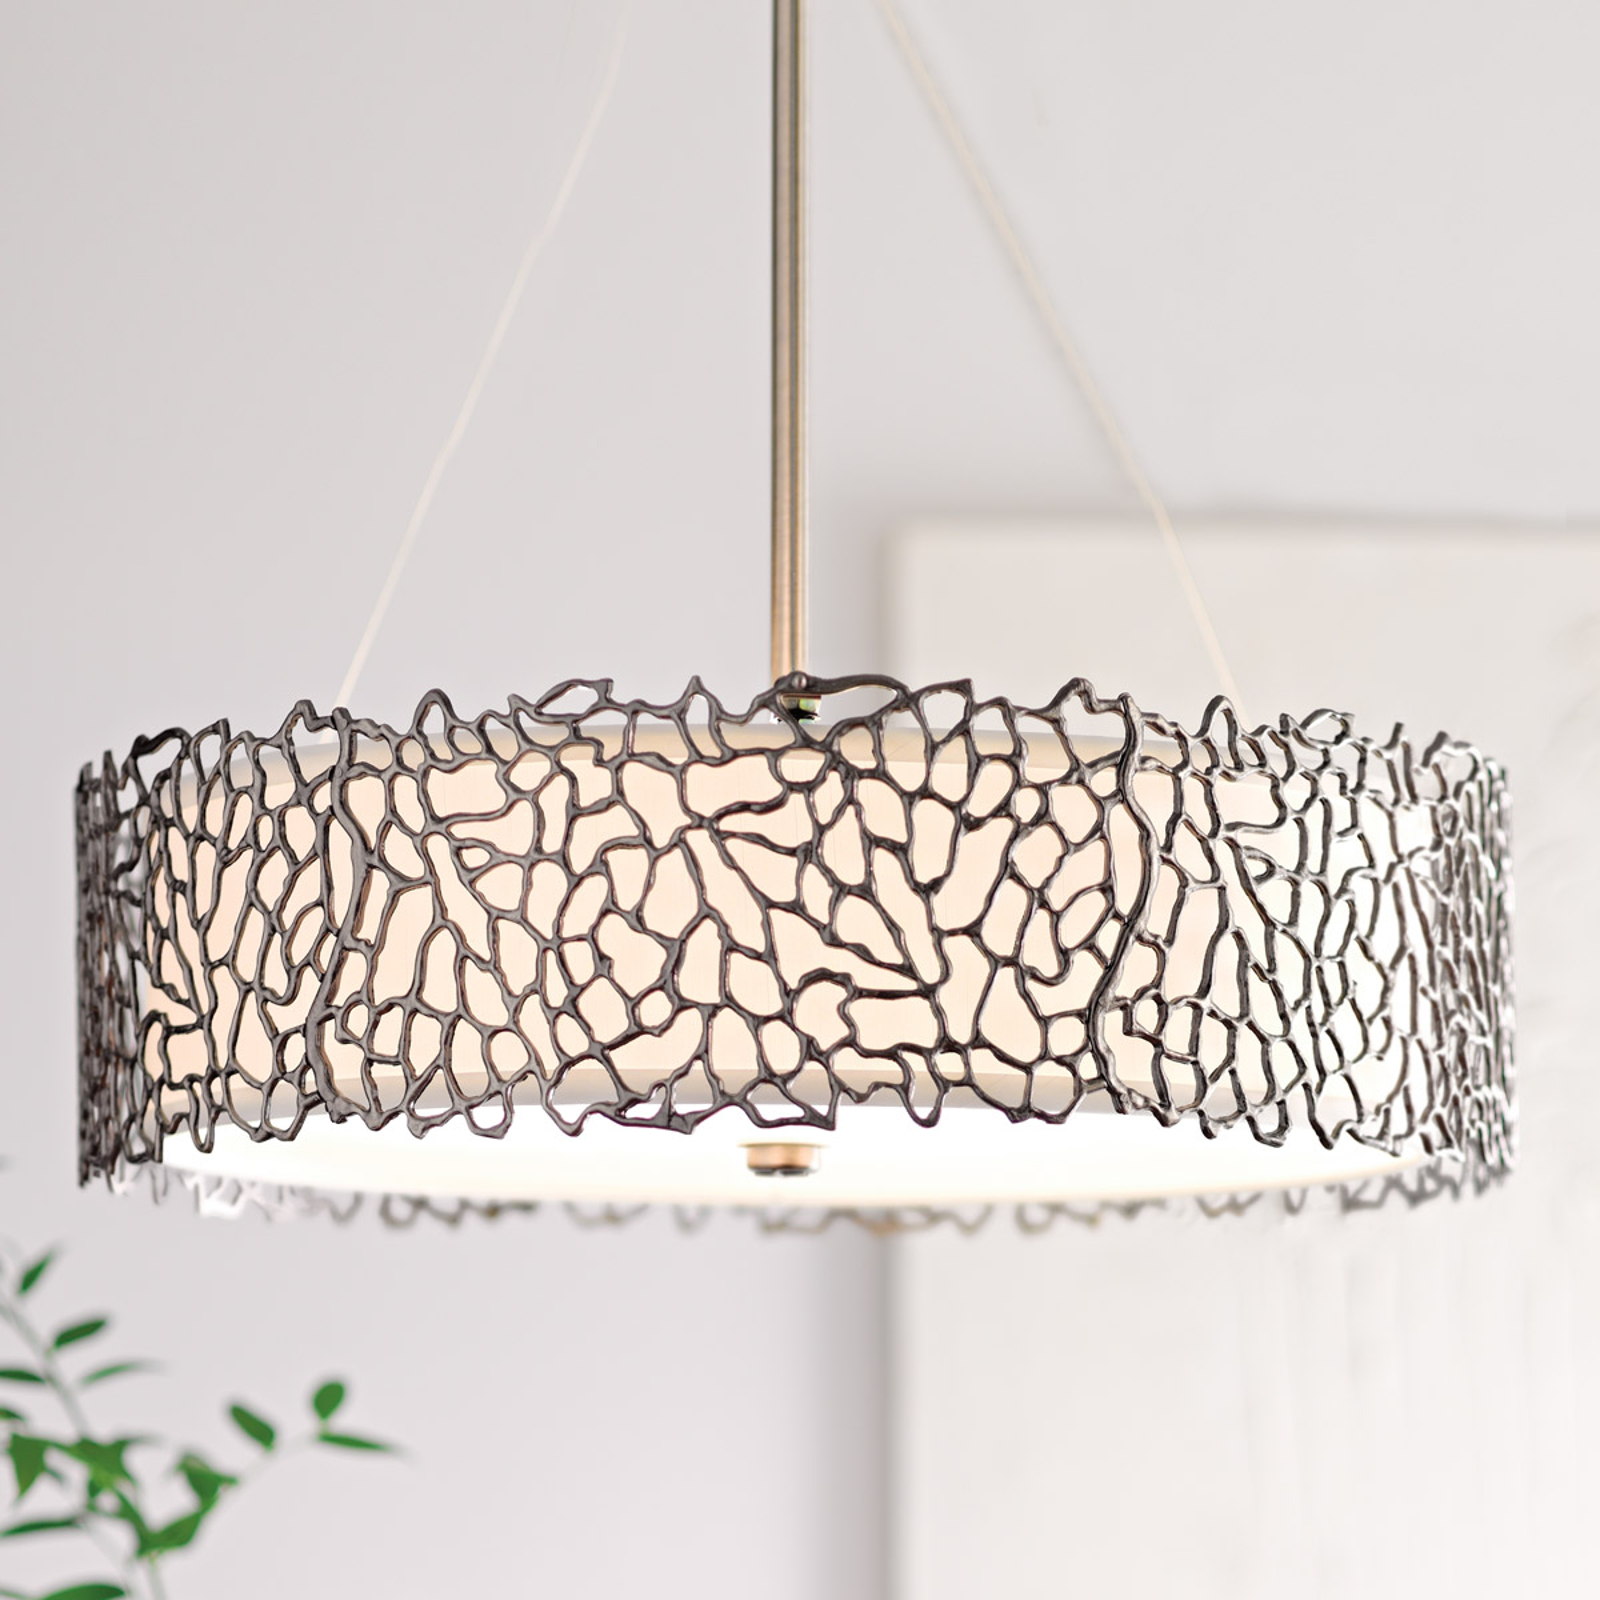 Silver Coral hanging light, 55.9 cm_3048279_1